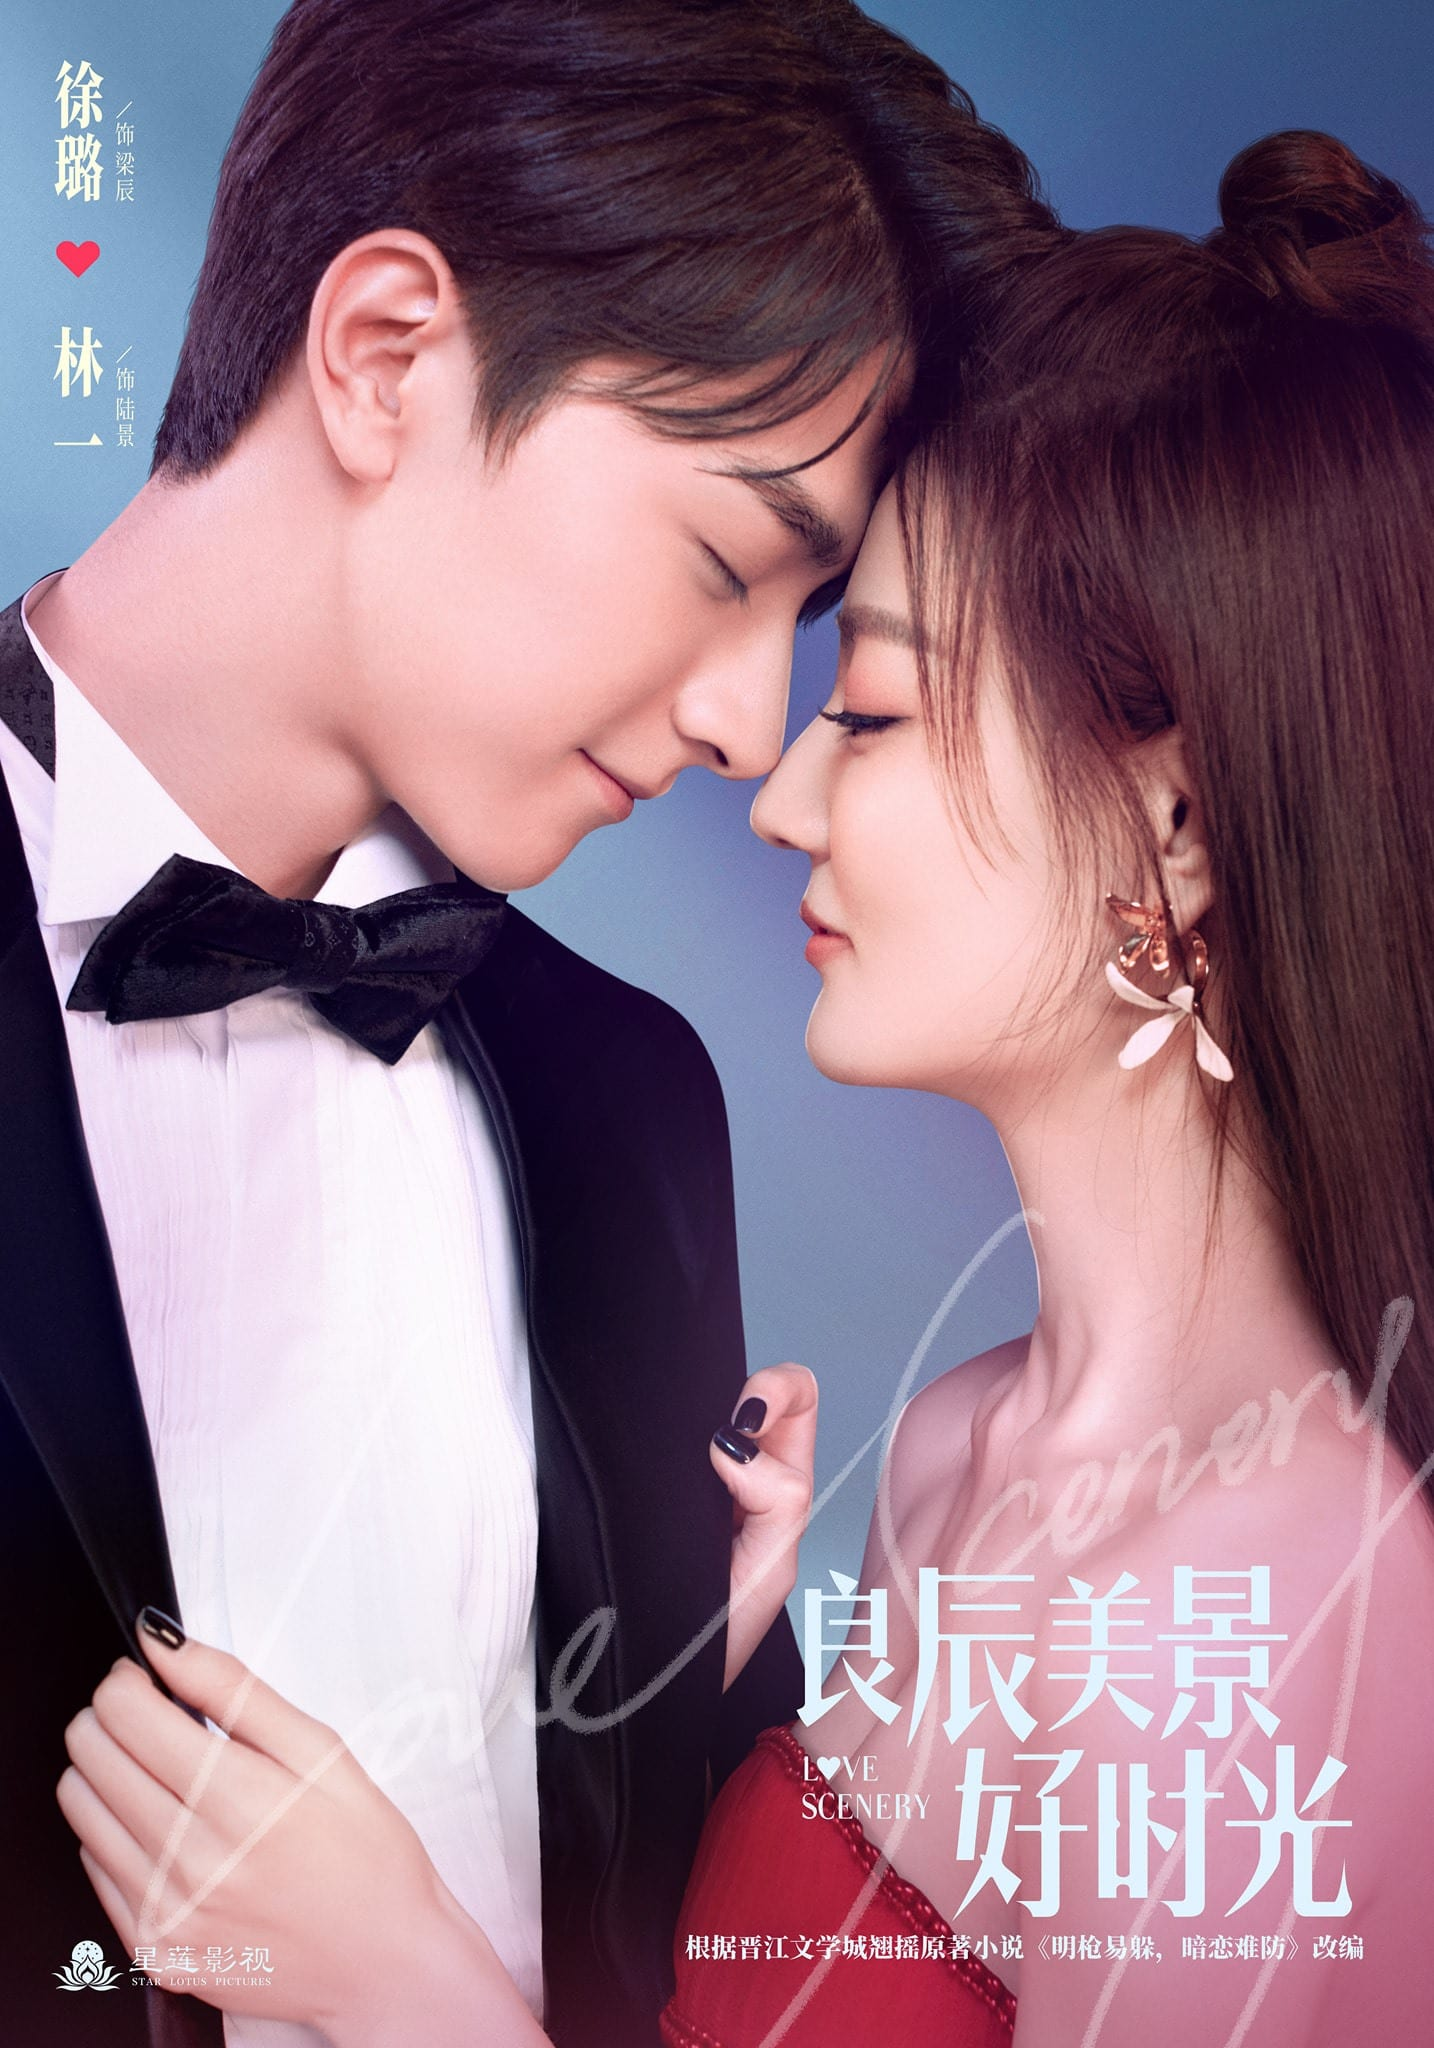 How To Watch Love Scenery Online?